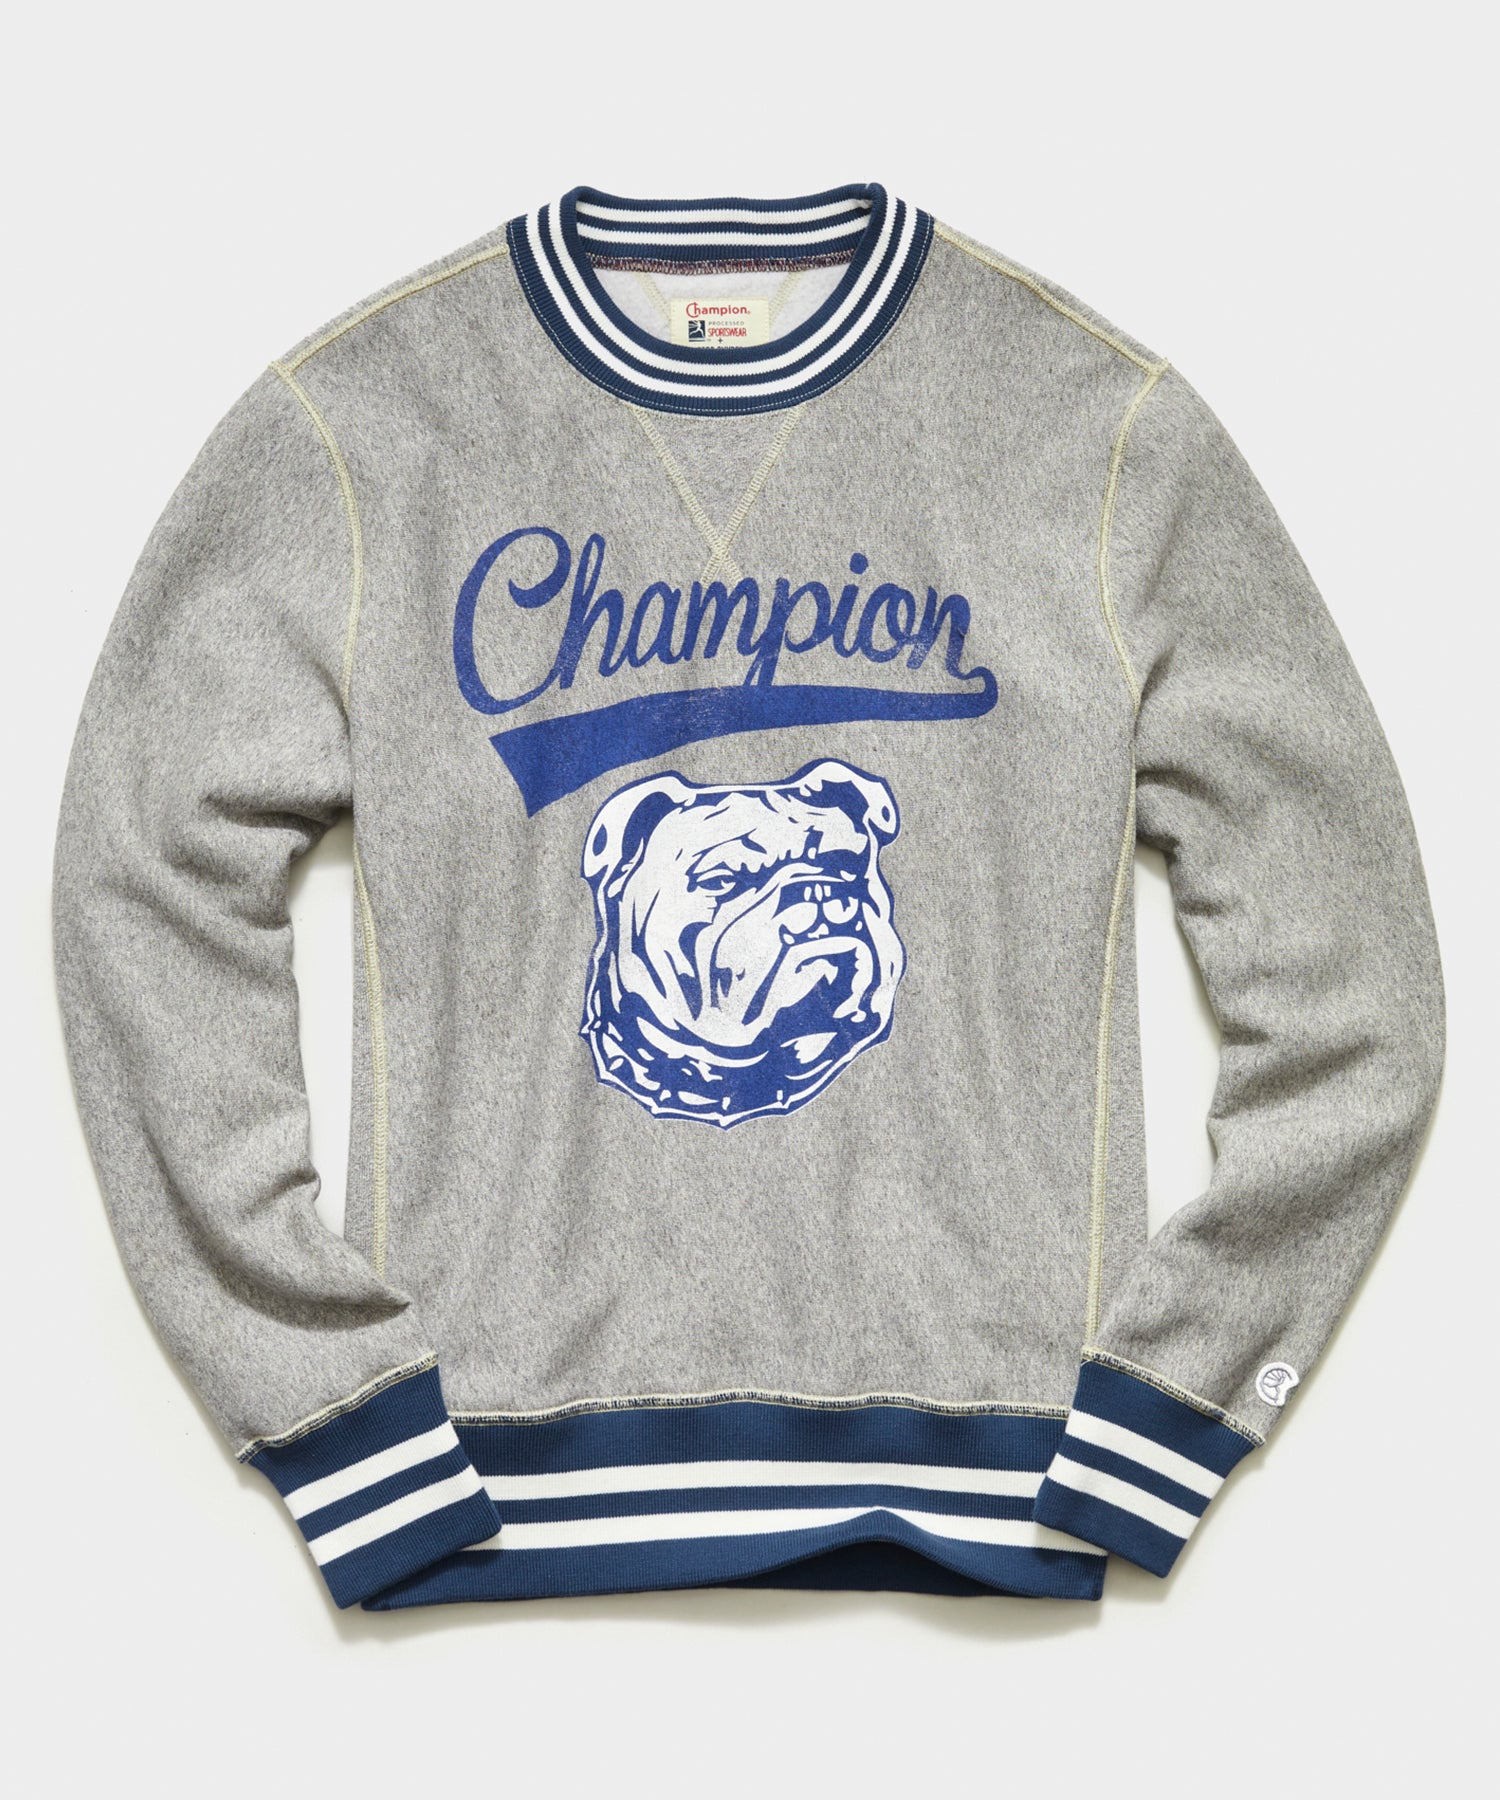 Champion Bulldog Sweatshirt in Light Grey Mix